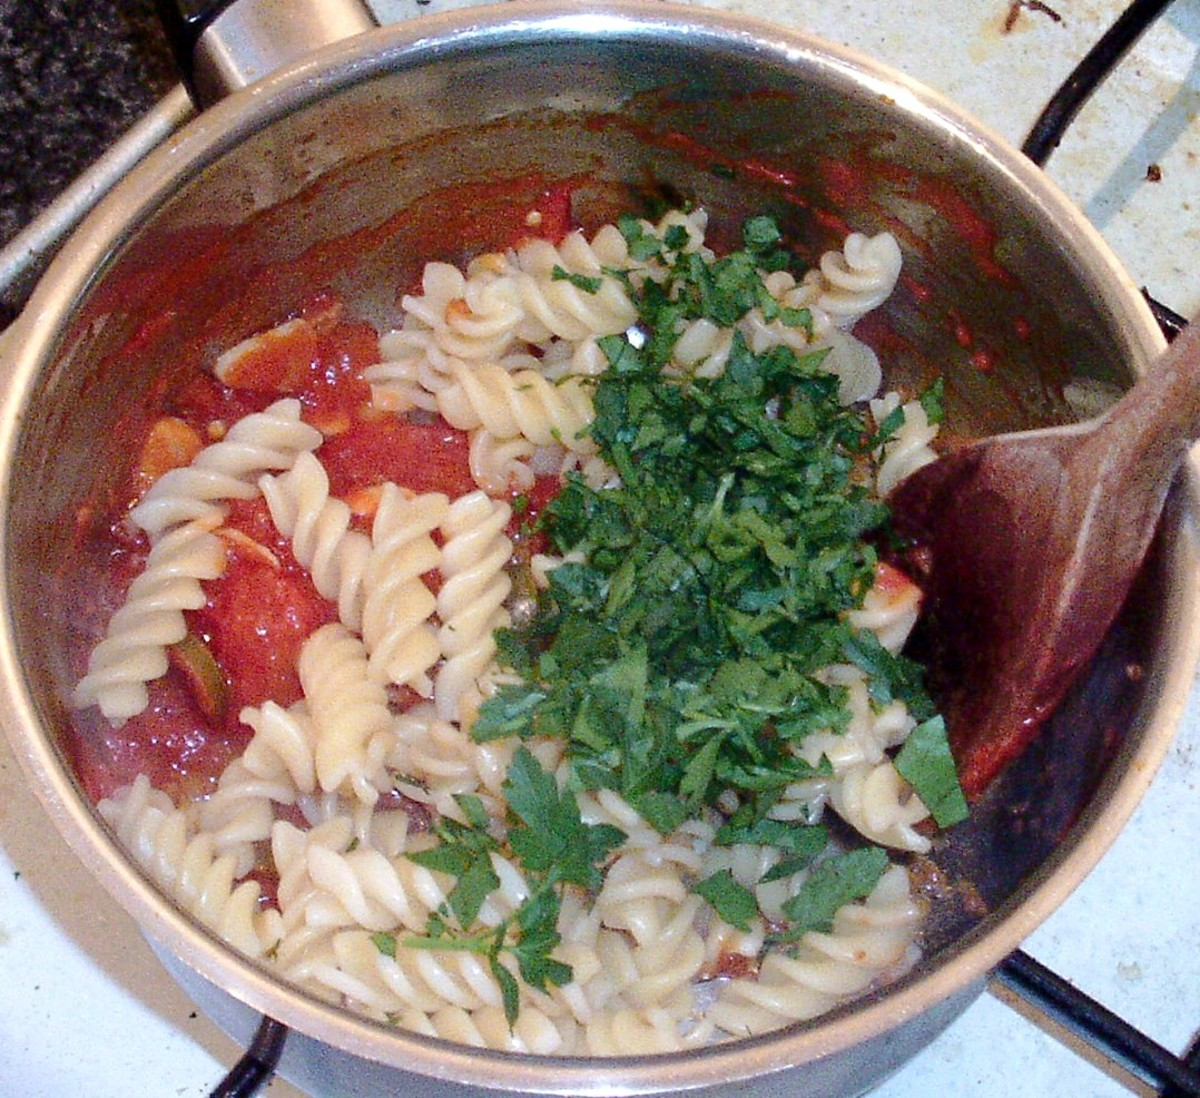 Drained pasta and chopped parsley are added to sauce